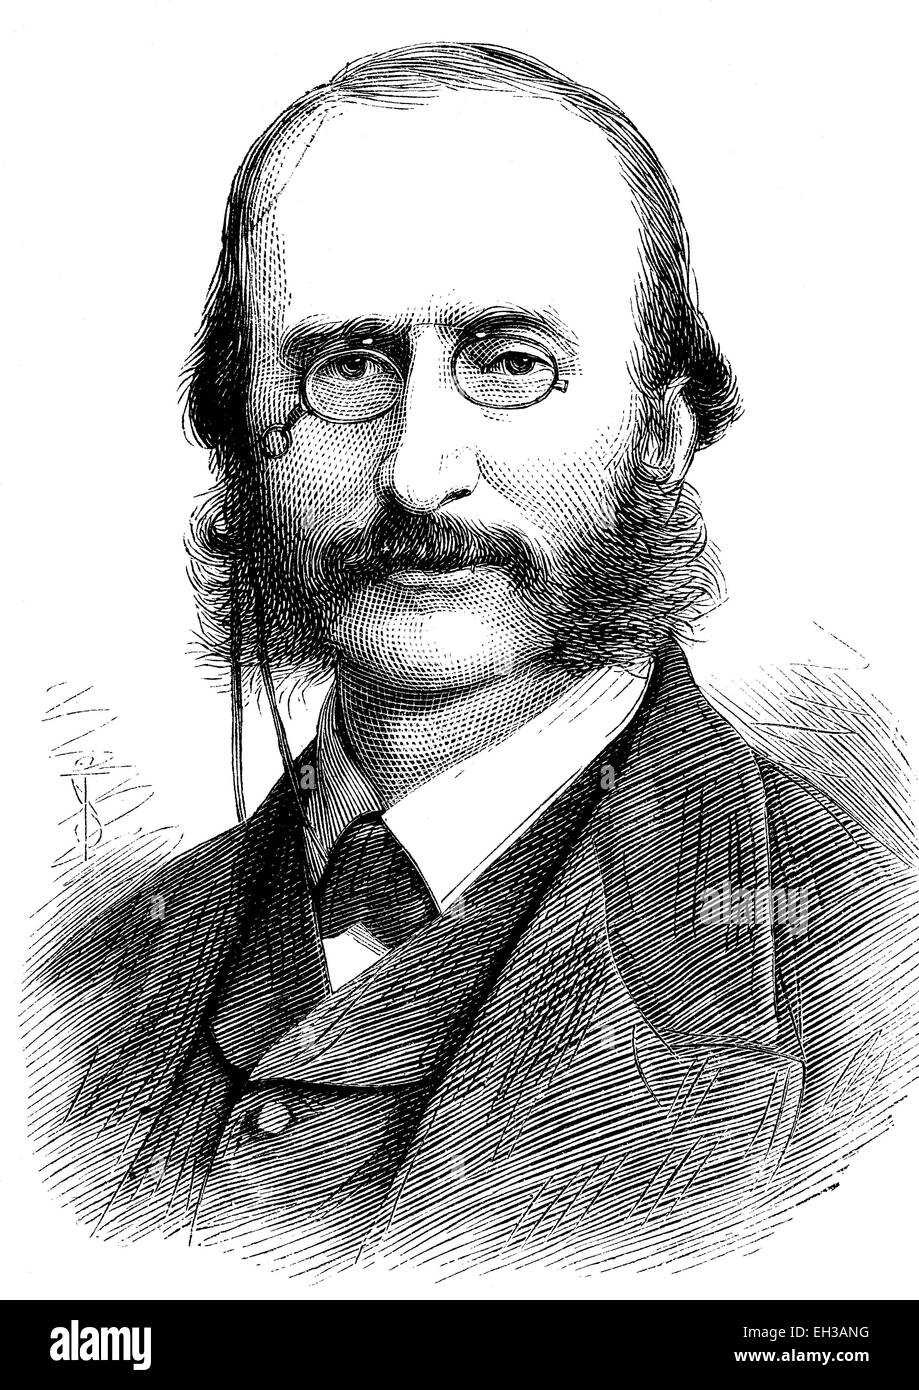 Jacques Offenbach, 1819 - 1880, born as Jakob Eberst, a French composer and cellist of German and Jewish descent, - Stock Image